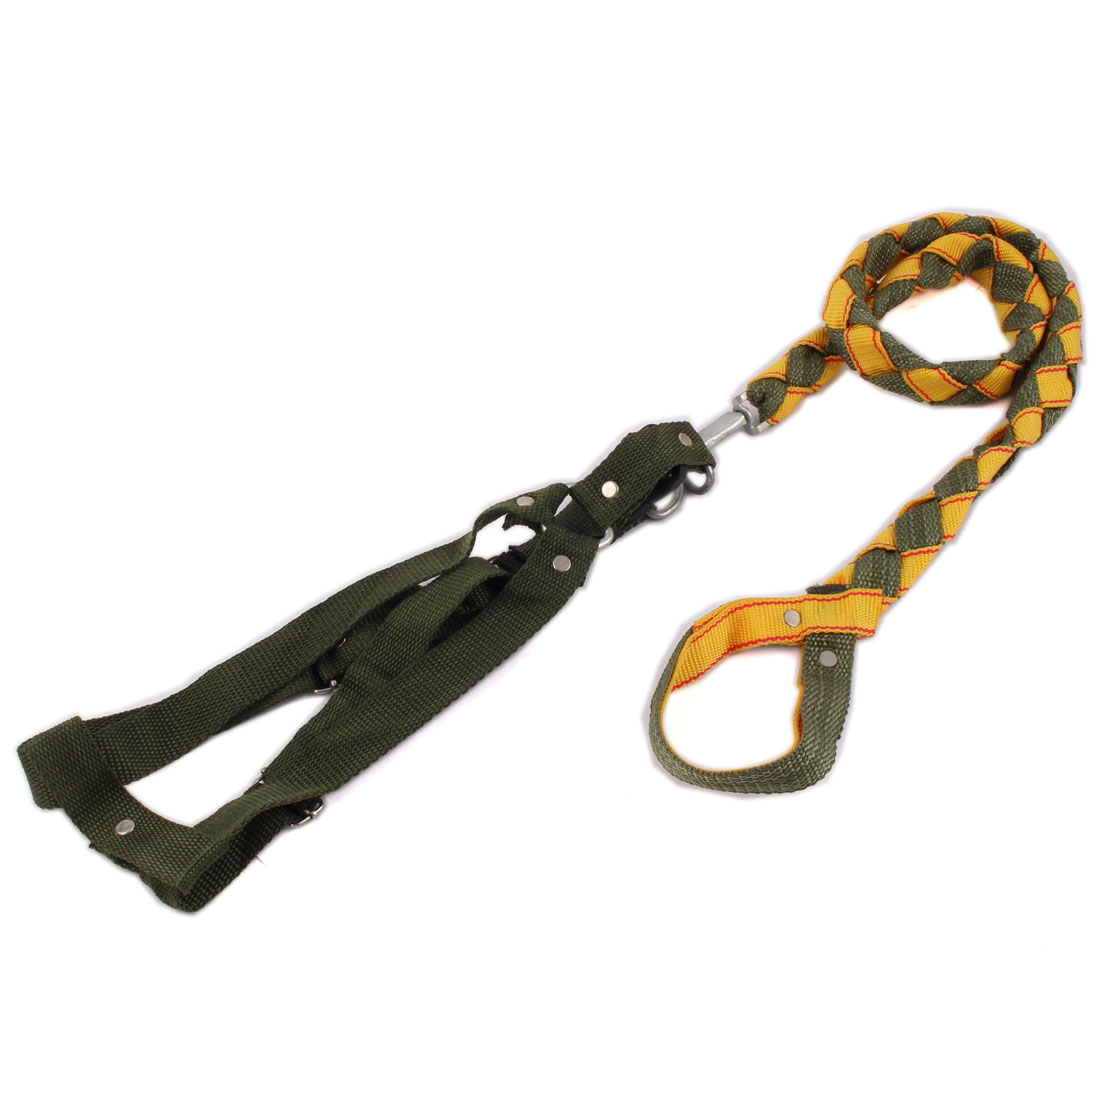 Pet Dog Puppy Walking Adjustable Harness Collar Strap Lead Leash Rope Army Green